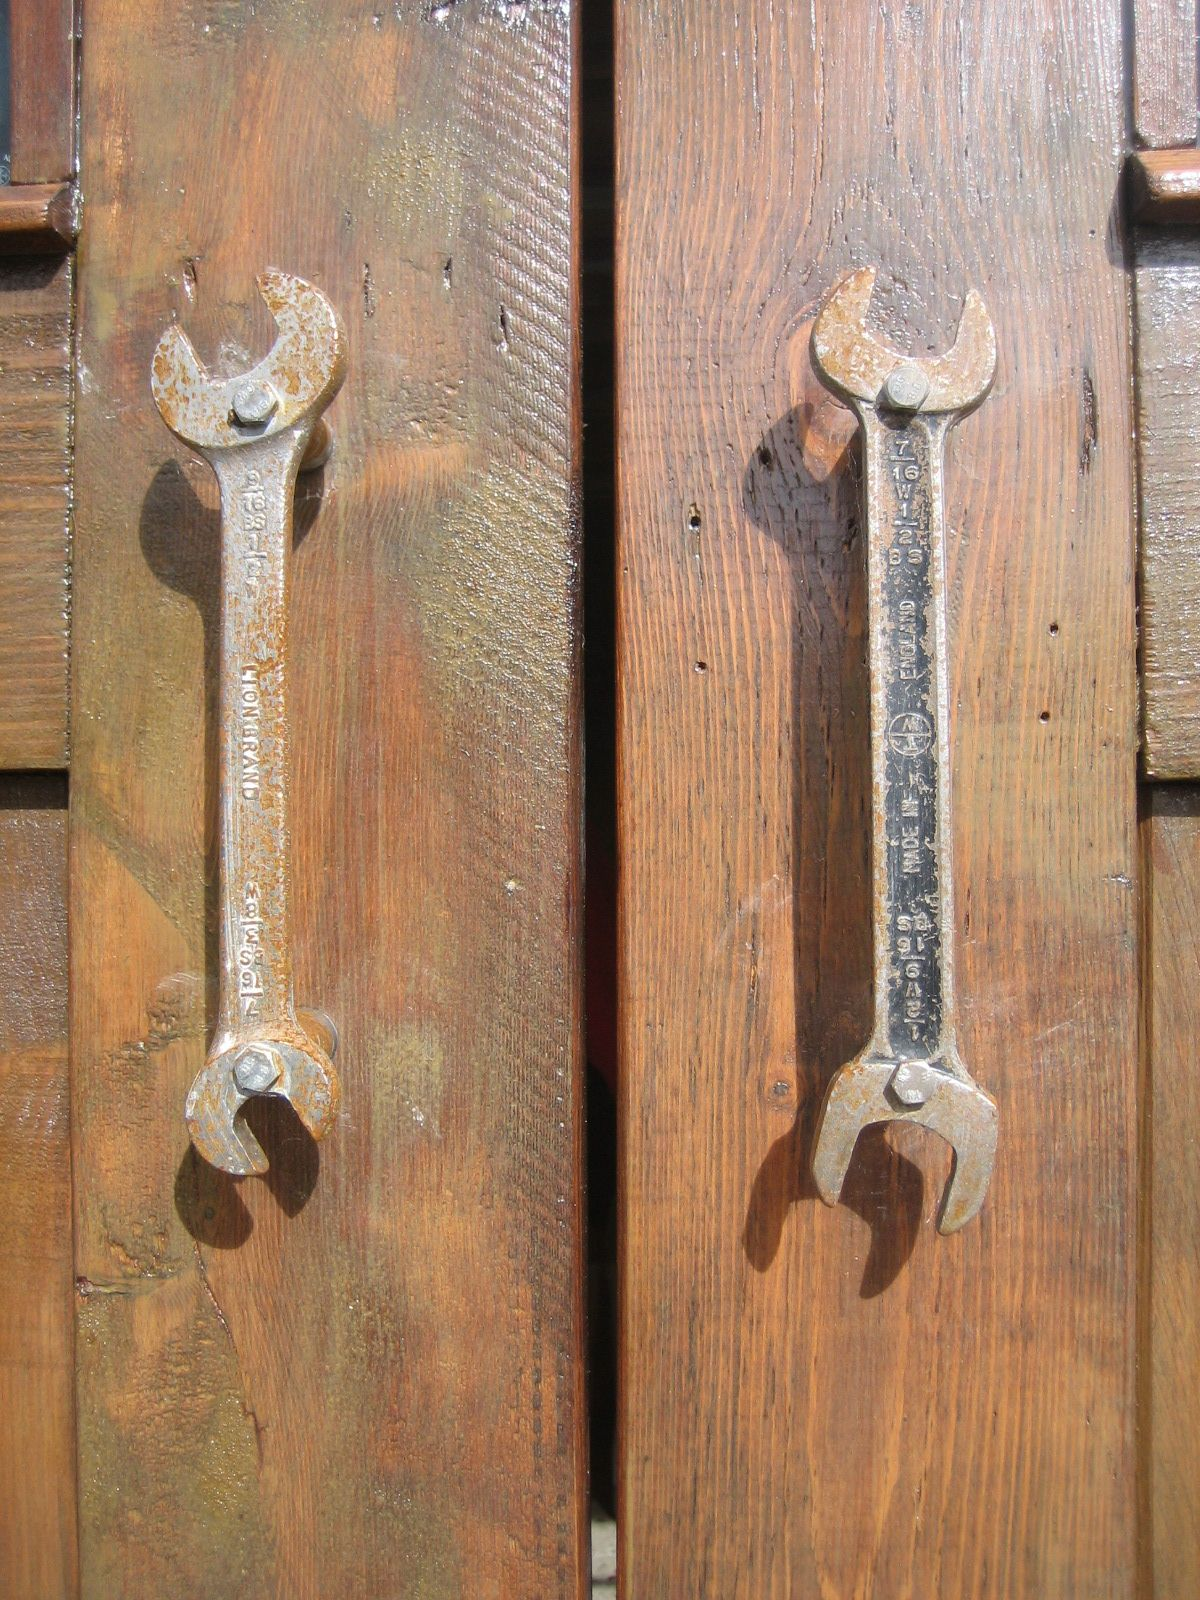 Our Garage Door Handles Made From Old Spanners We Call Them